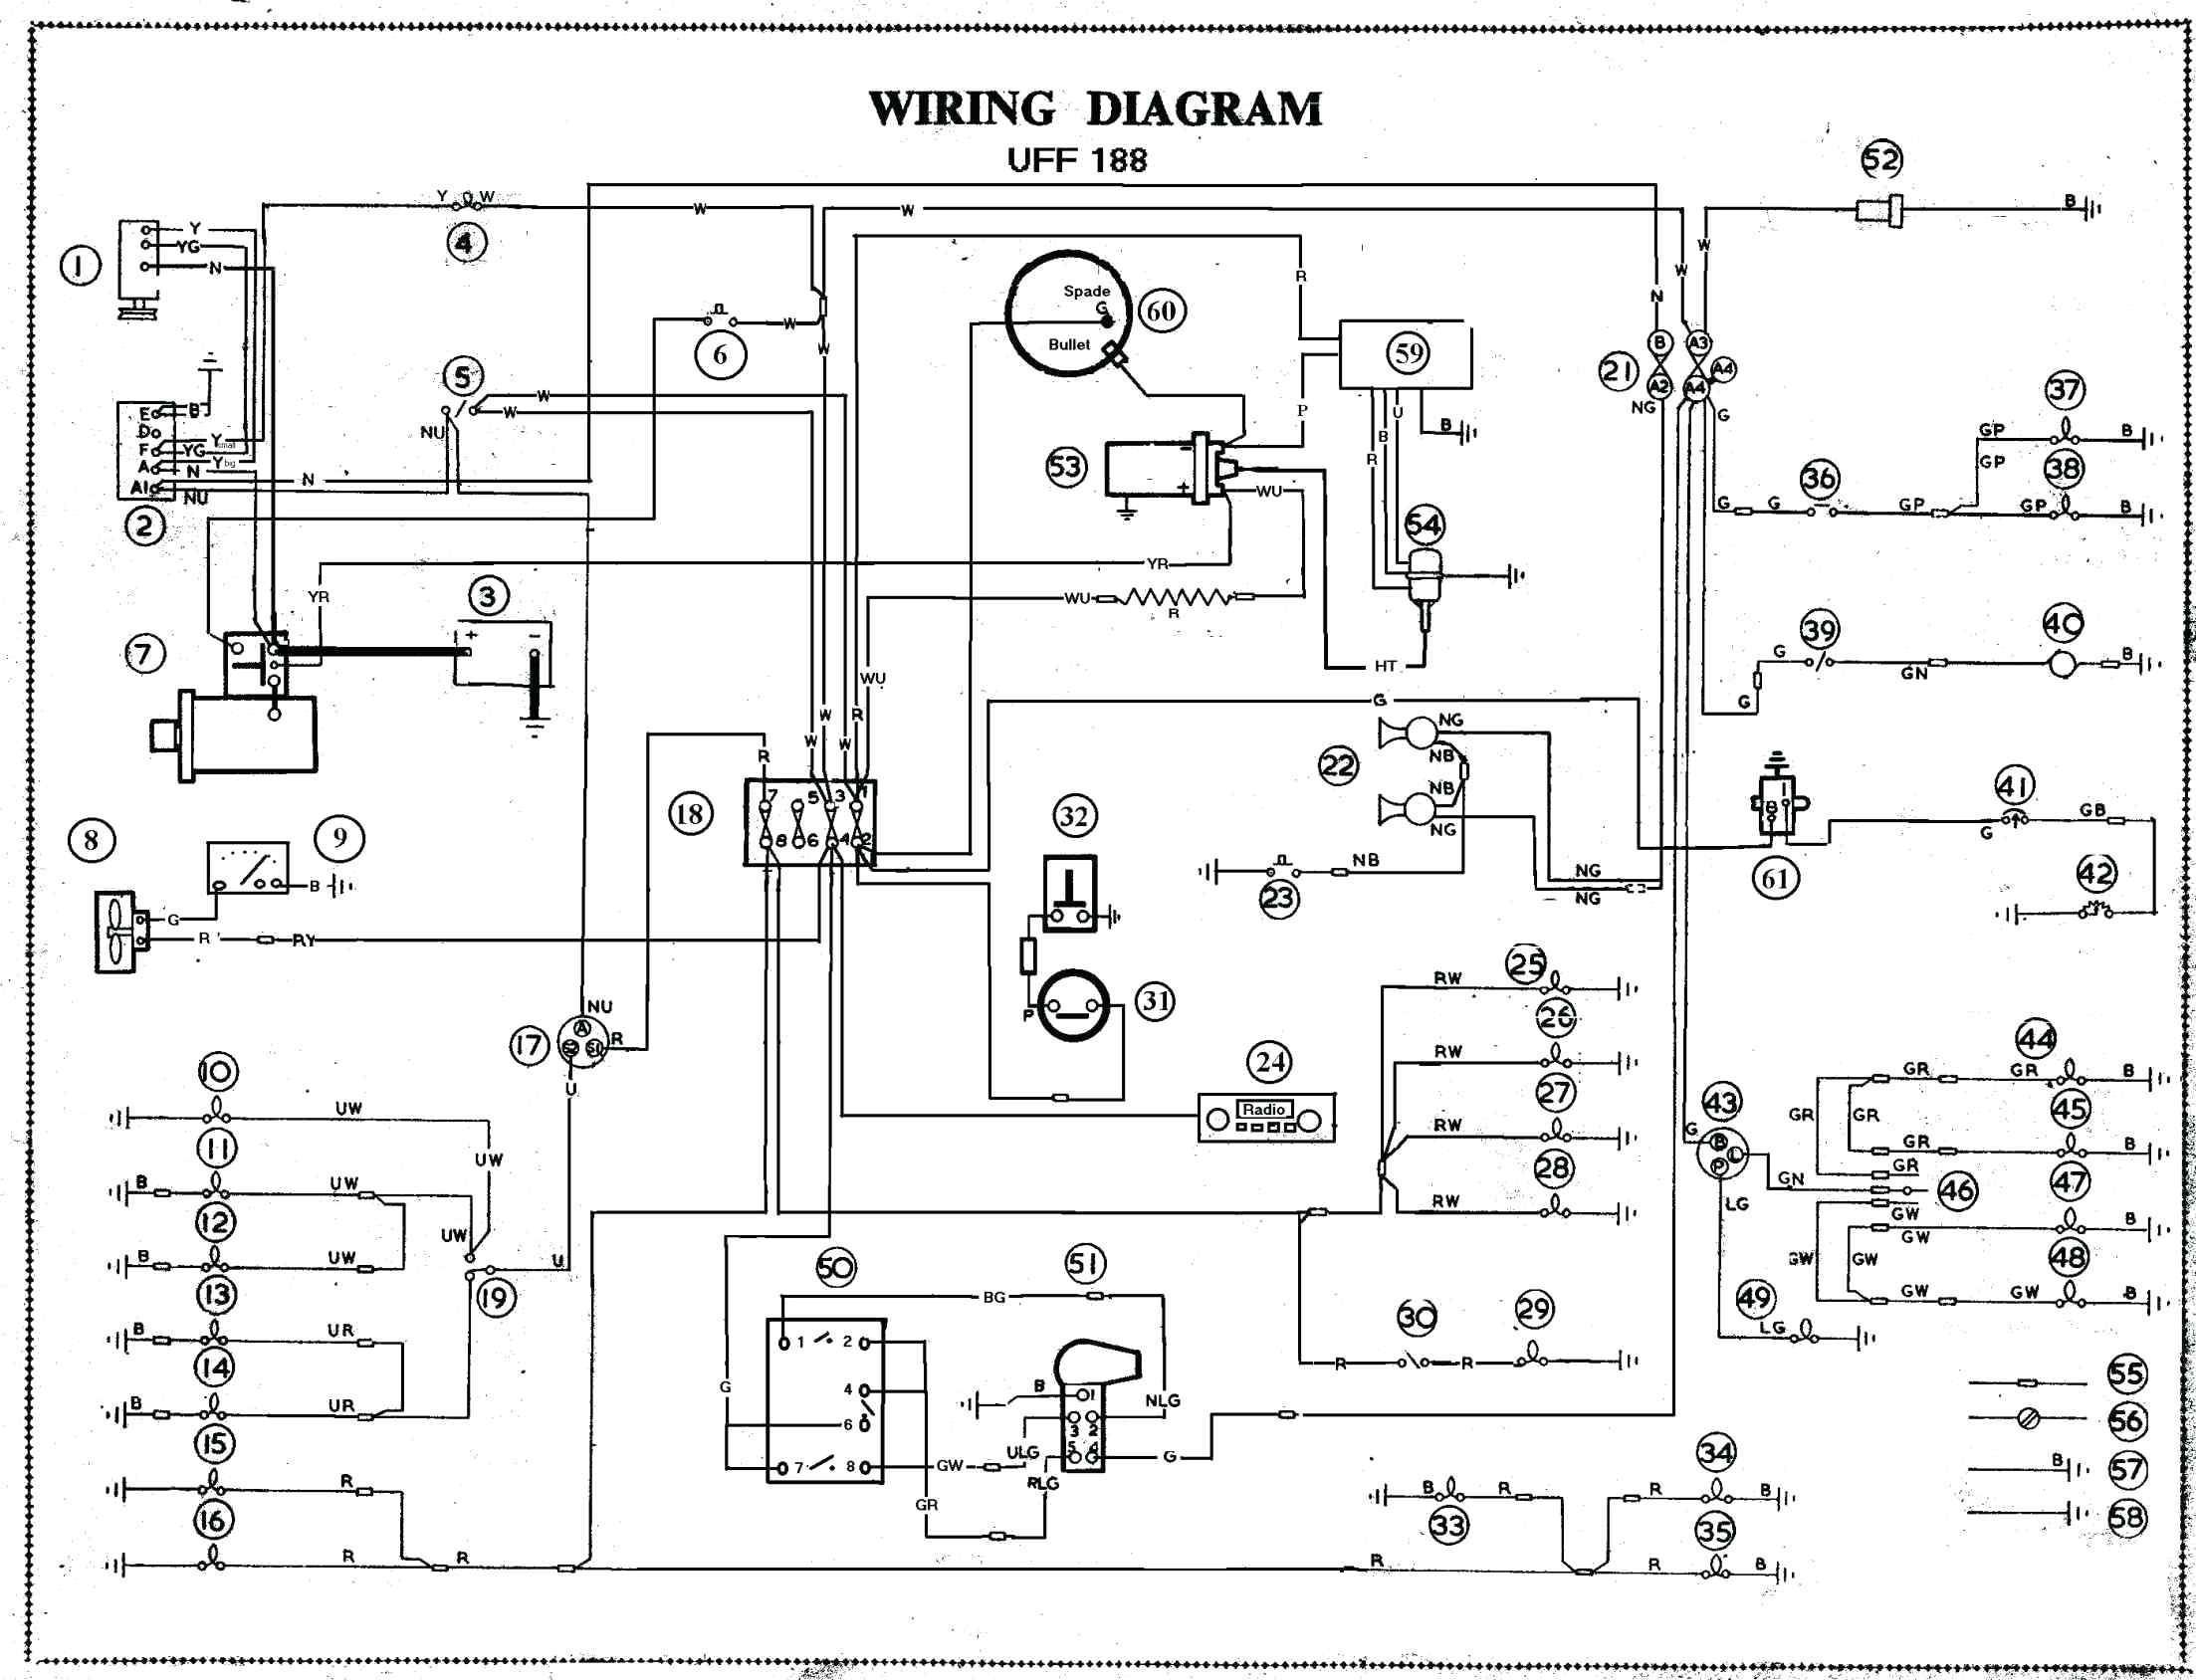 hunt magneto wiring diagram auto electrical wiring diagramslick magneto wiring schematic